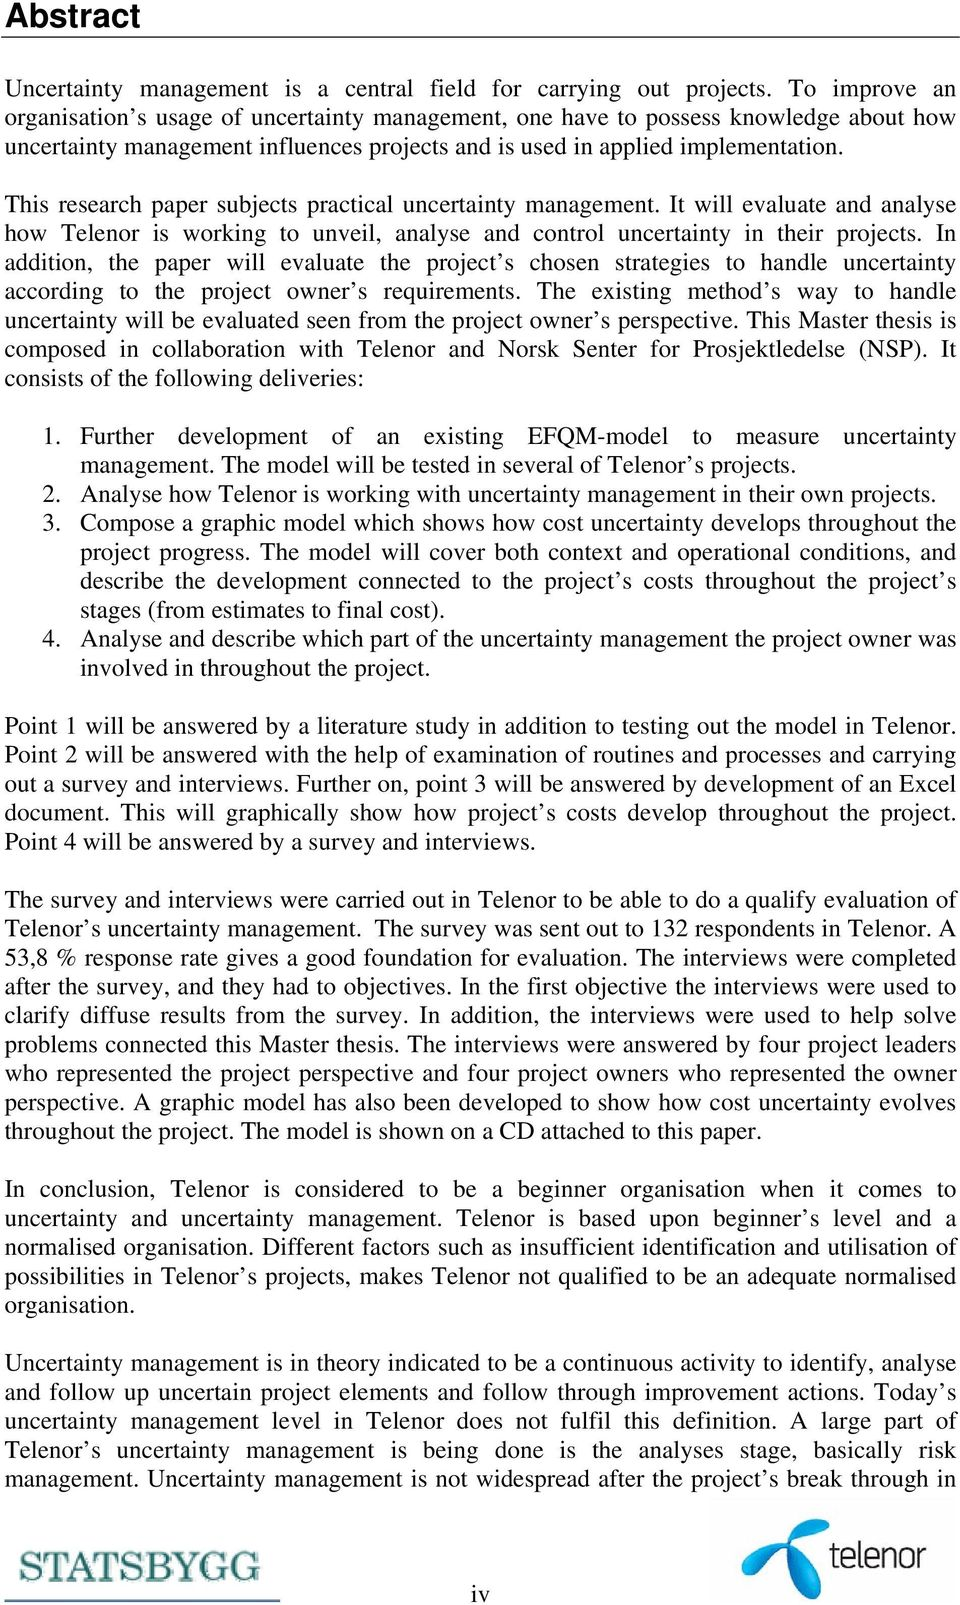 This research paper subjects practical uncertainty management. It will evaluate and analyse how Telenor is working to unveil, analyse and control uncertainty in their projects.